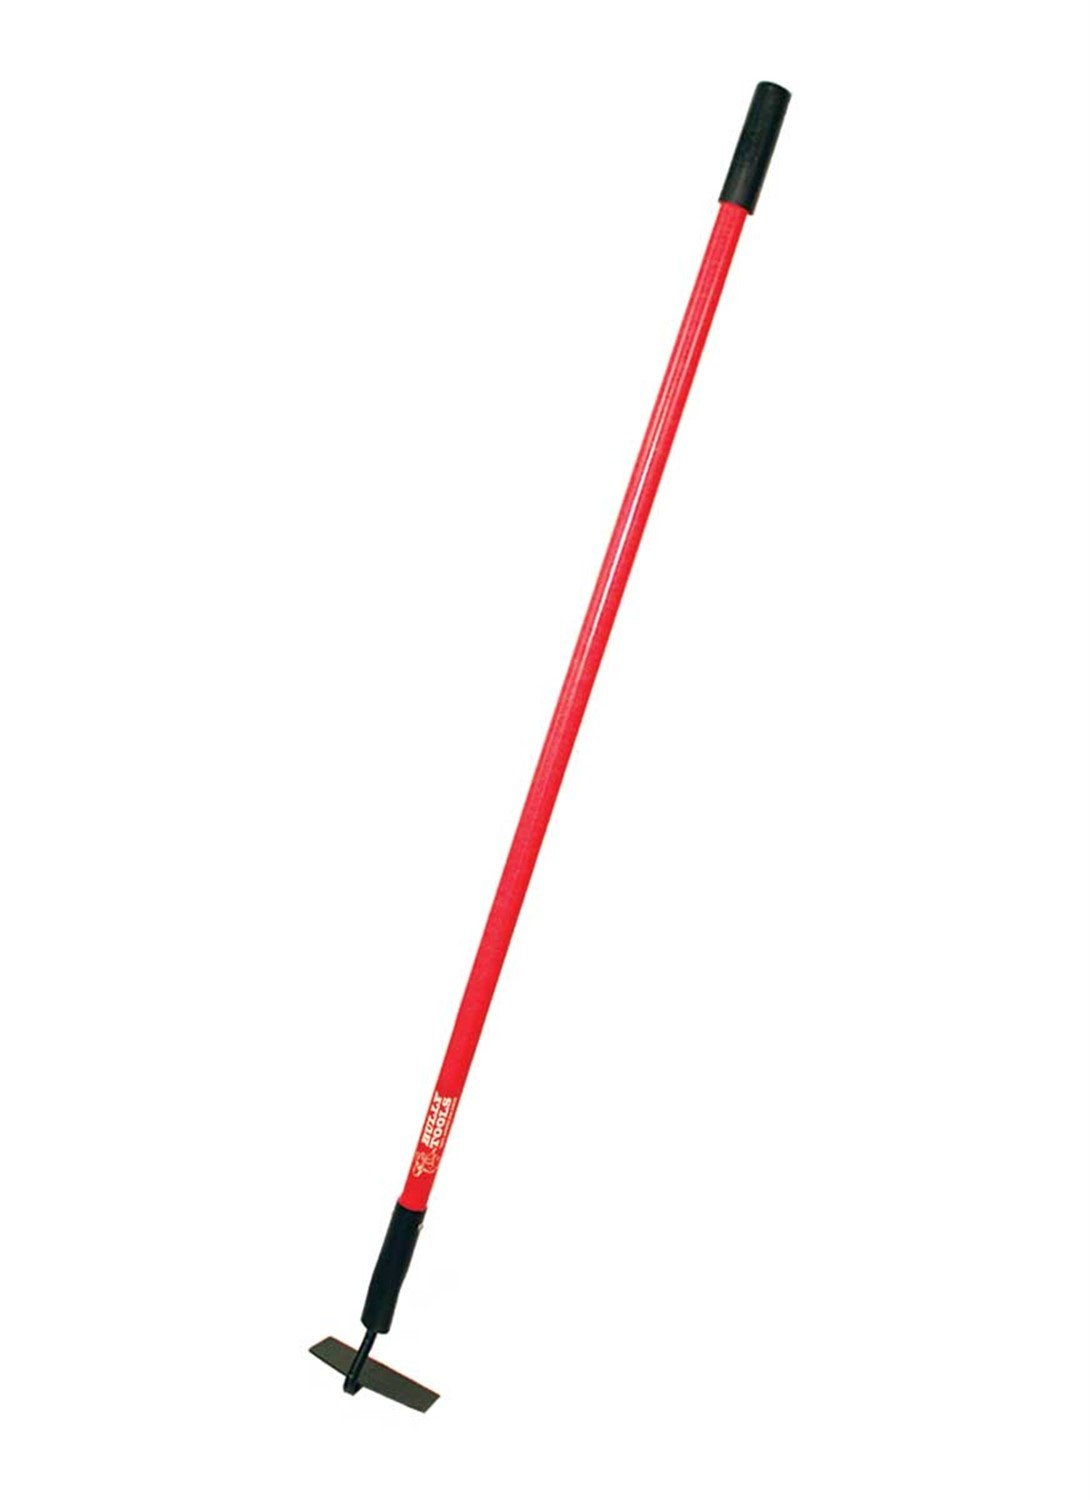 Bully Tools 92346 12-Gauge Nursery/Beet Hoe with Fiberglass Handle, 6-Inch by 2.5-Inch by Bully Tools (Image #1)